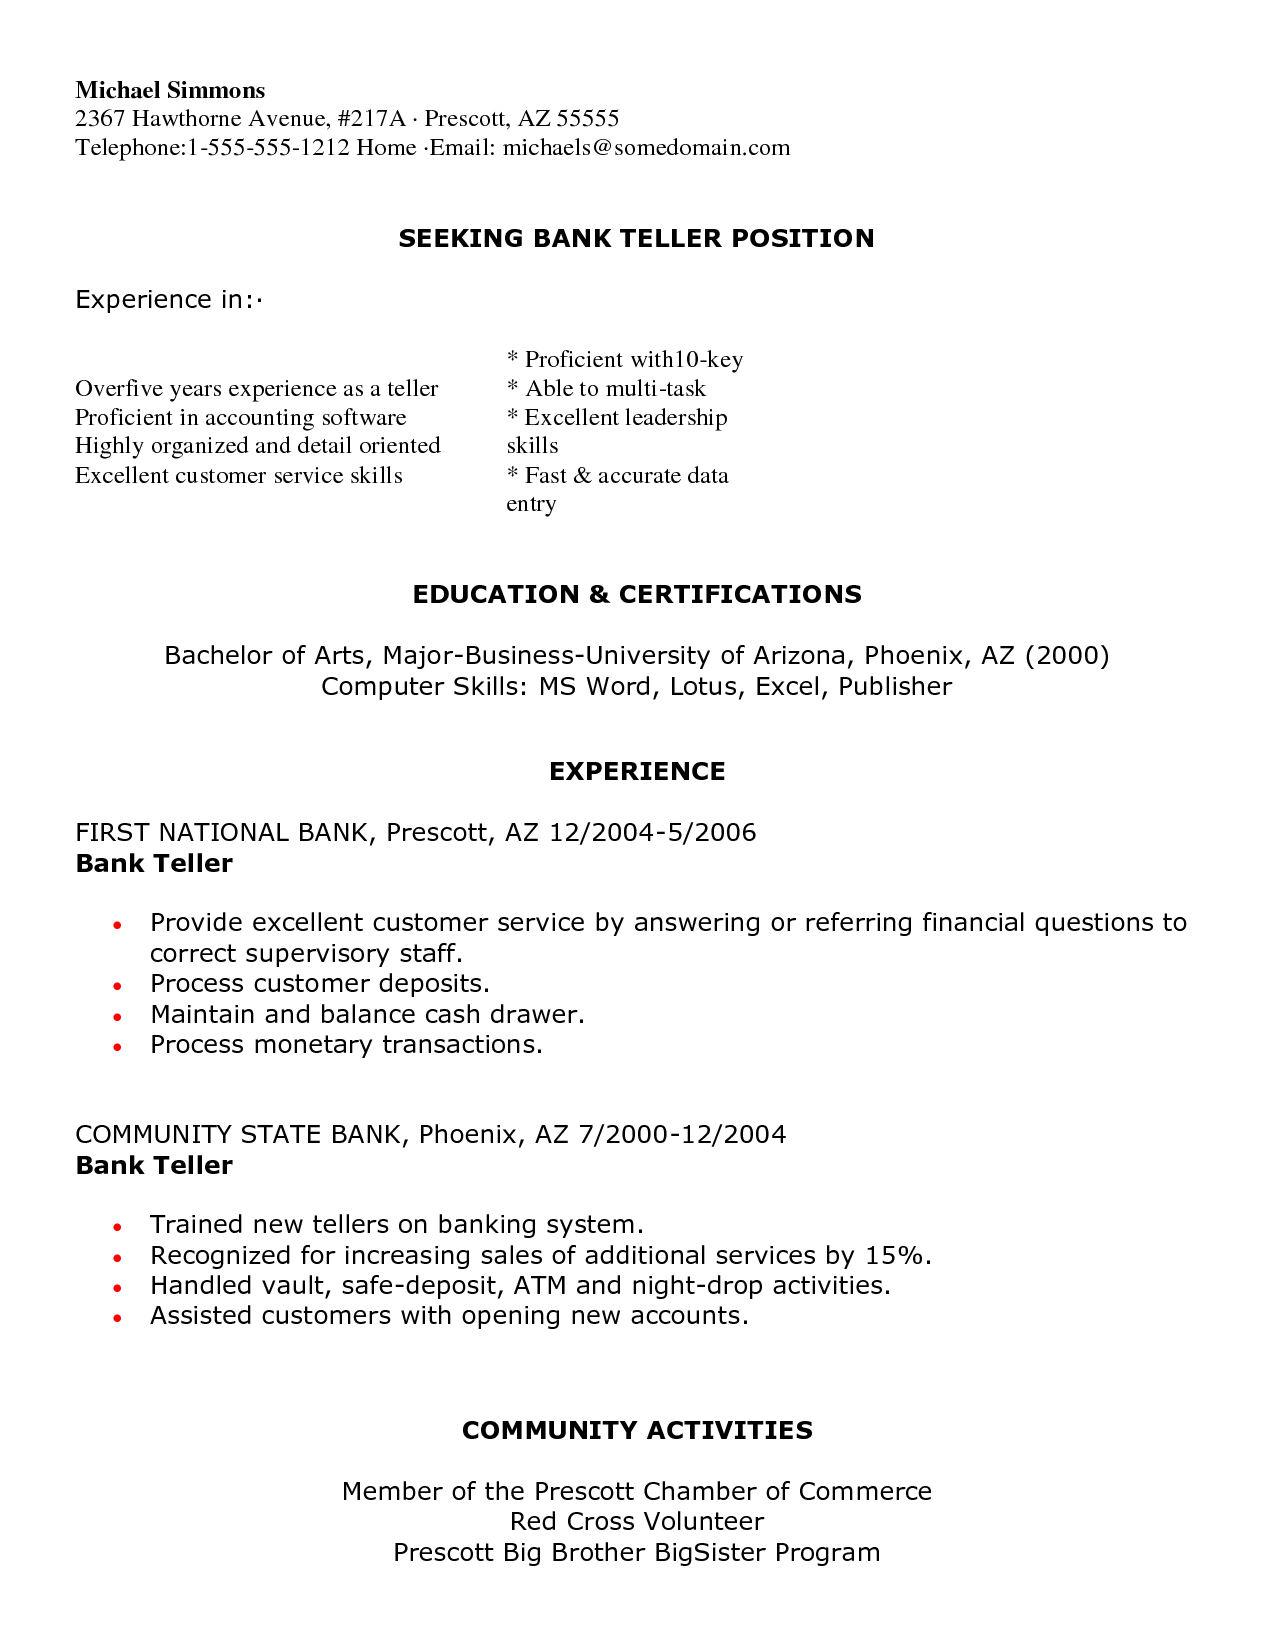 sample resume for a bank teller position httpwwwresumecareer - Cover Letter For Bank Teller Position